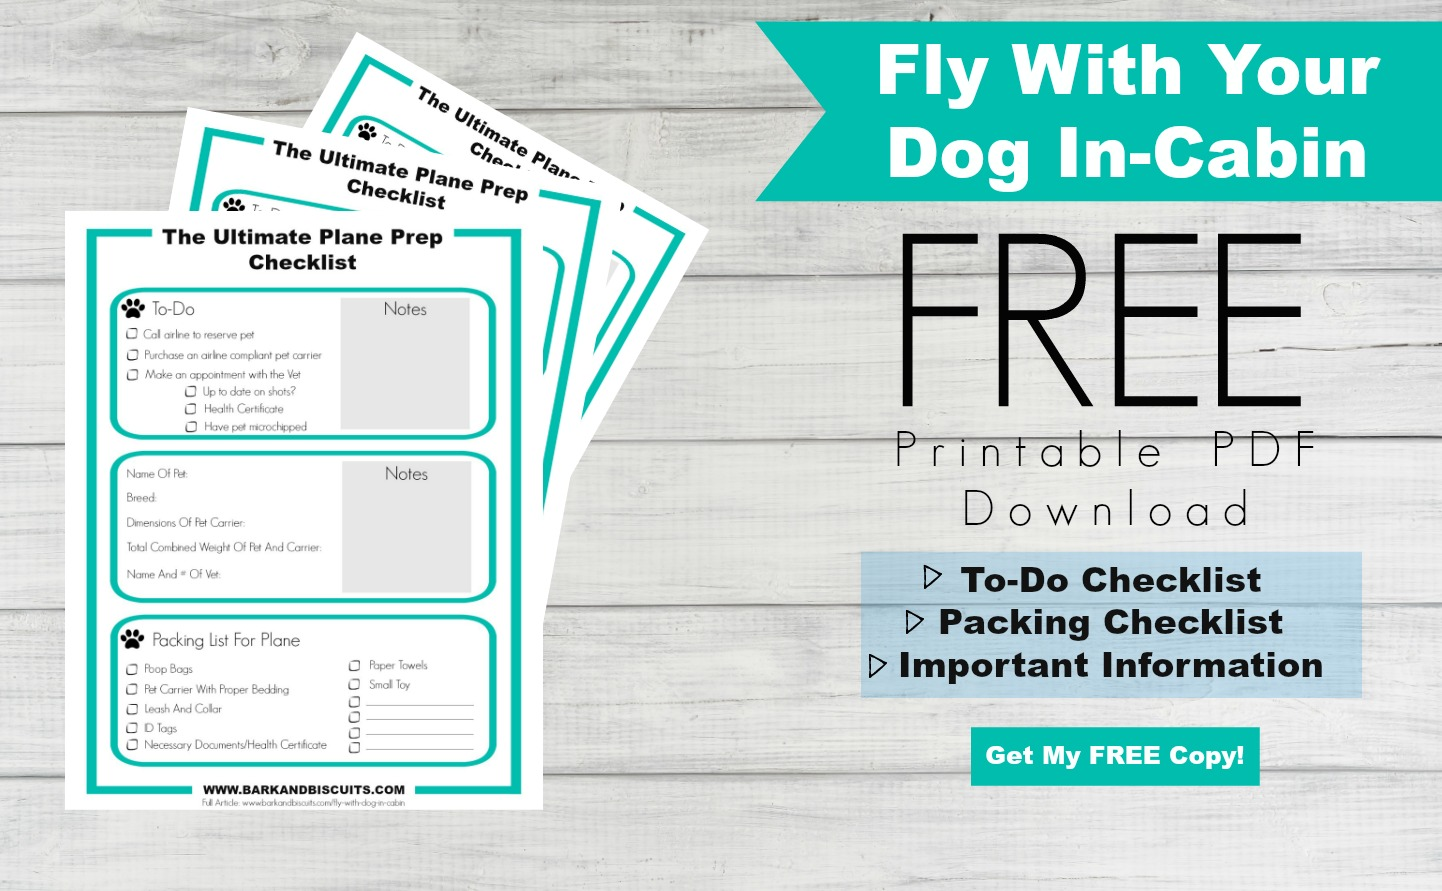 How To Fly With Your Dog In-Cabin: FREE Download